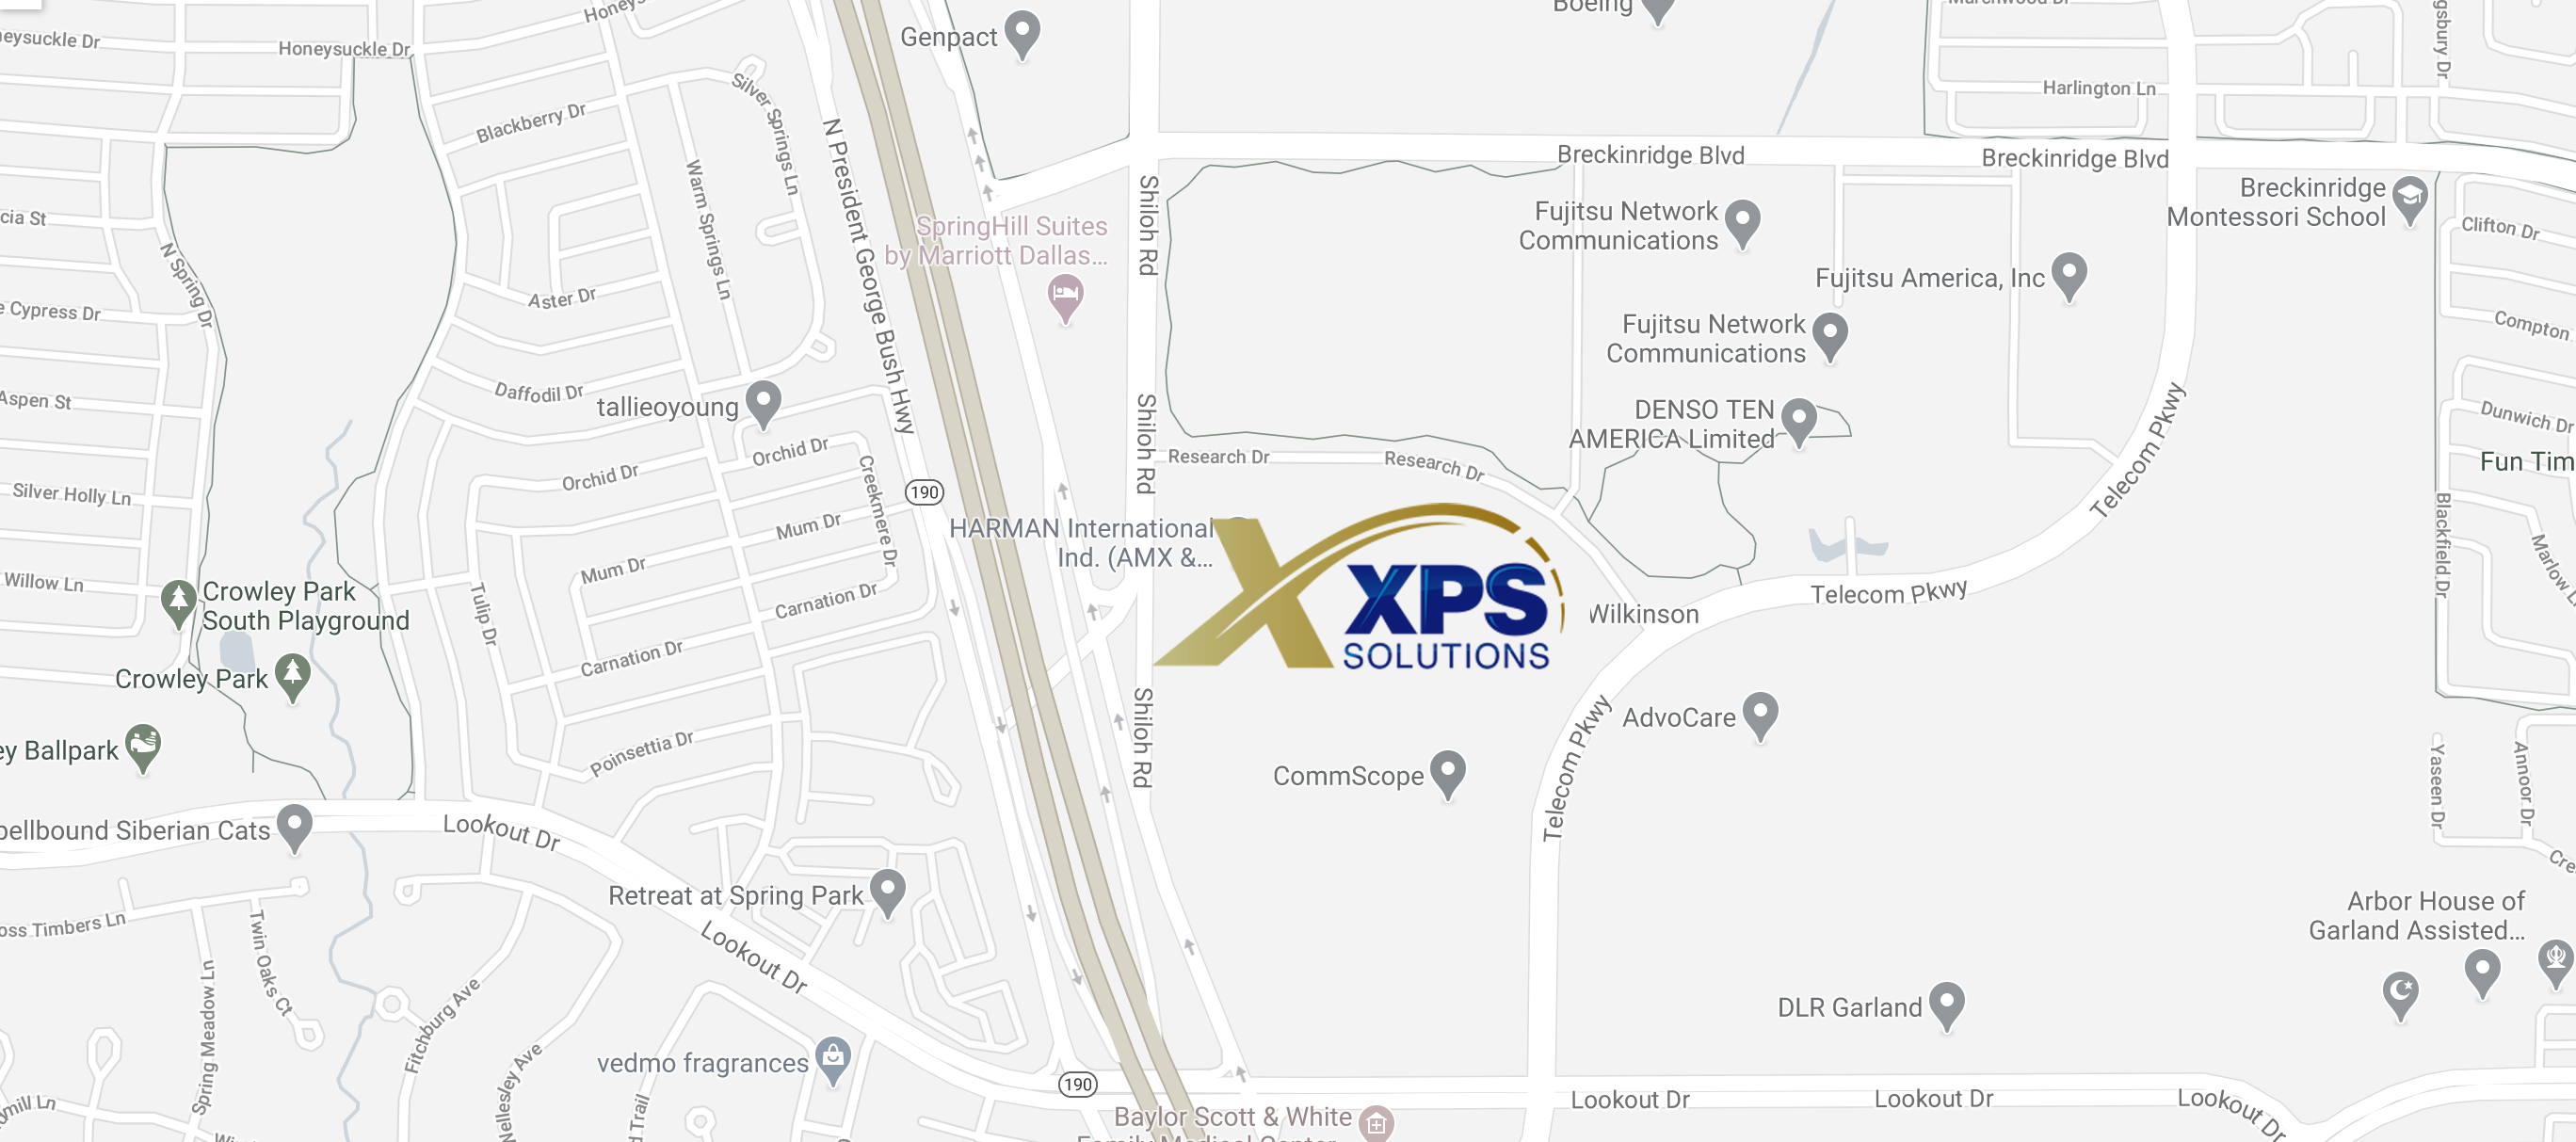 XPS map